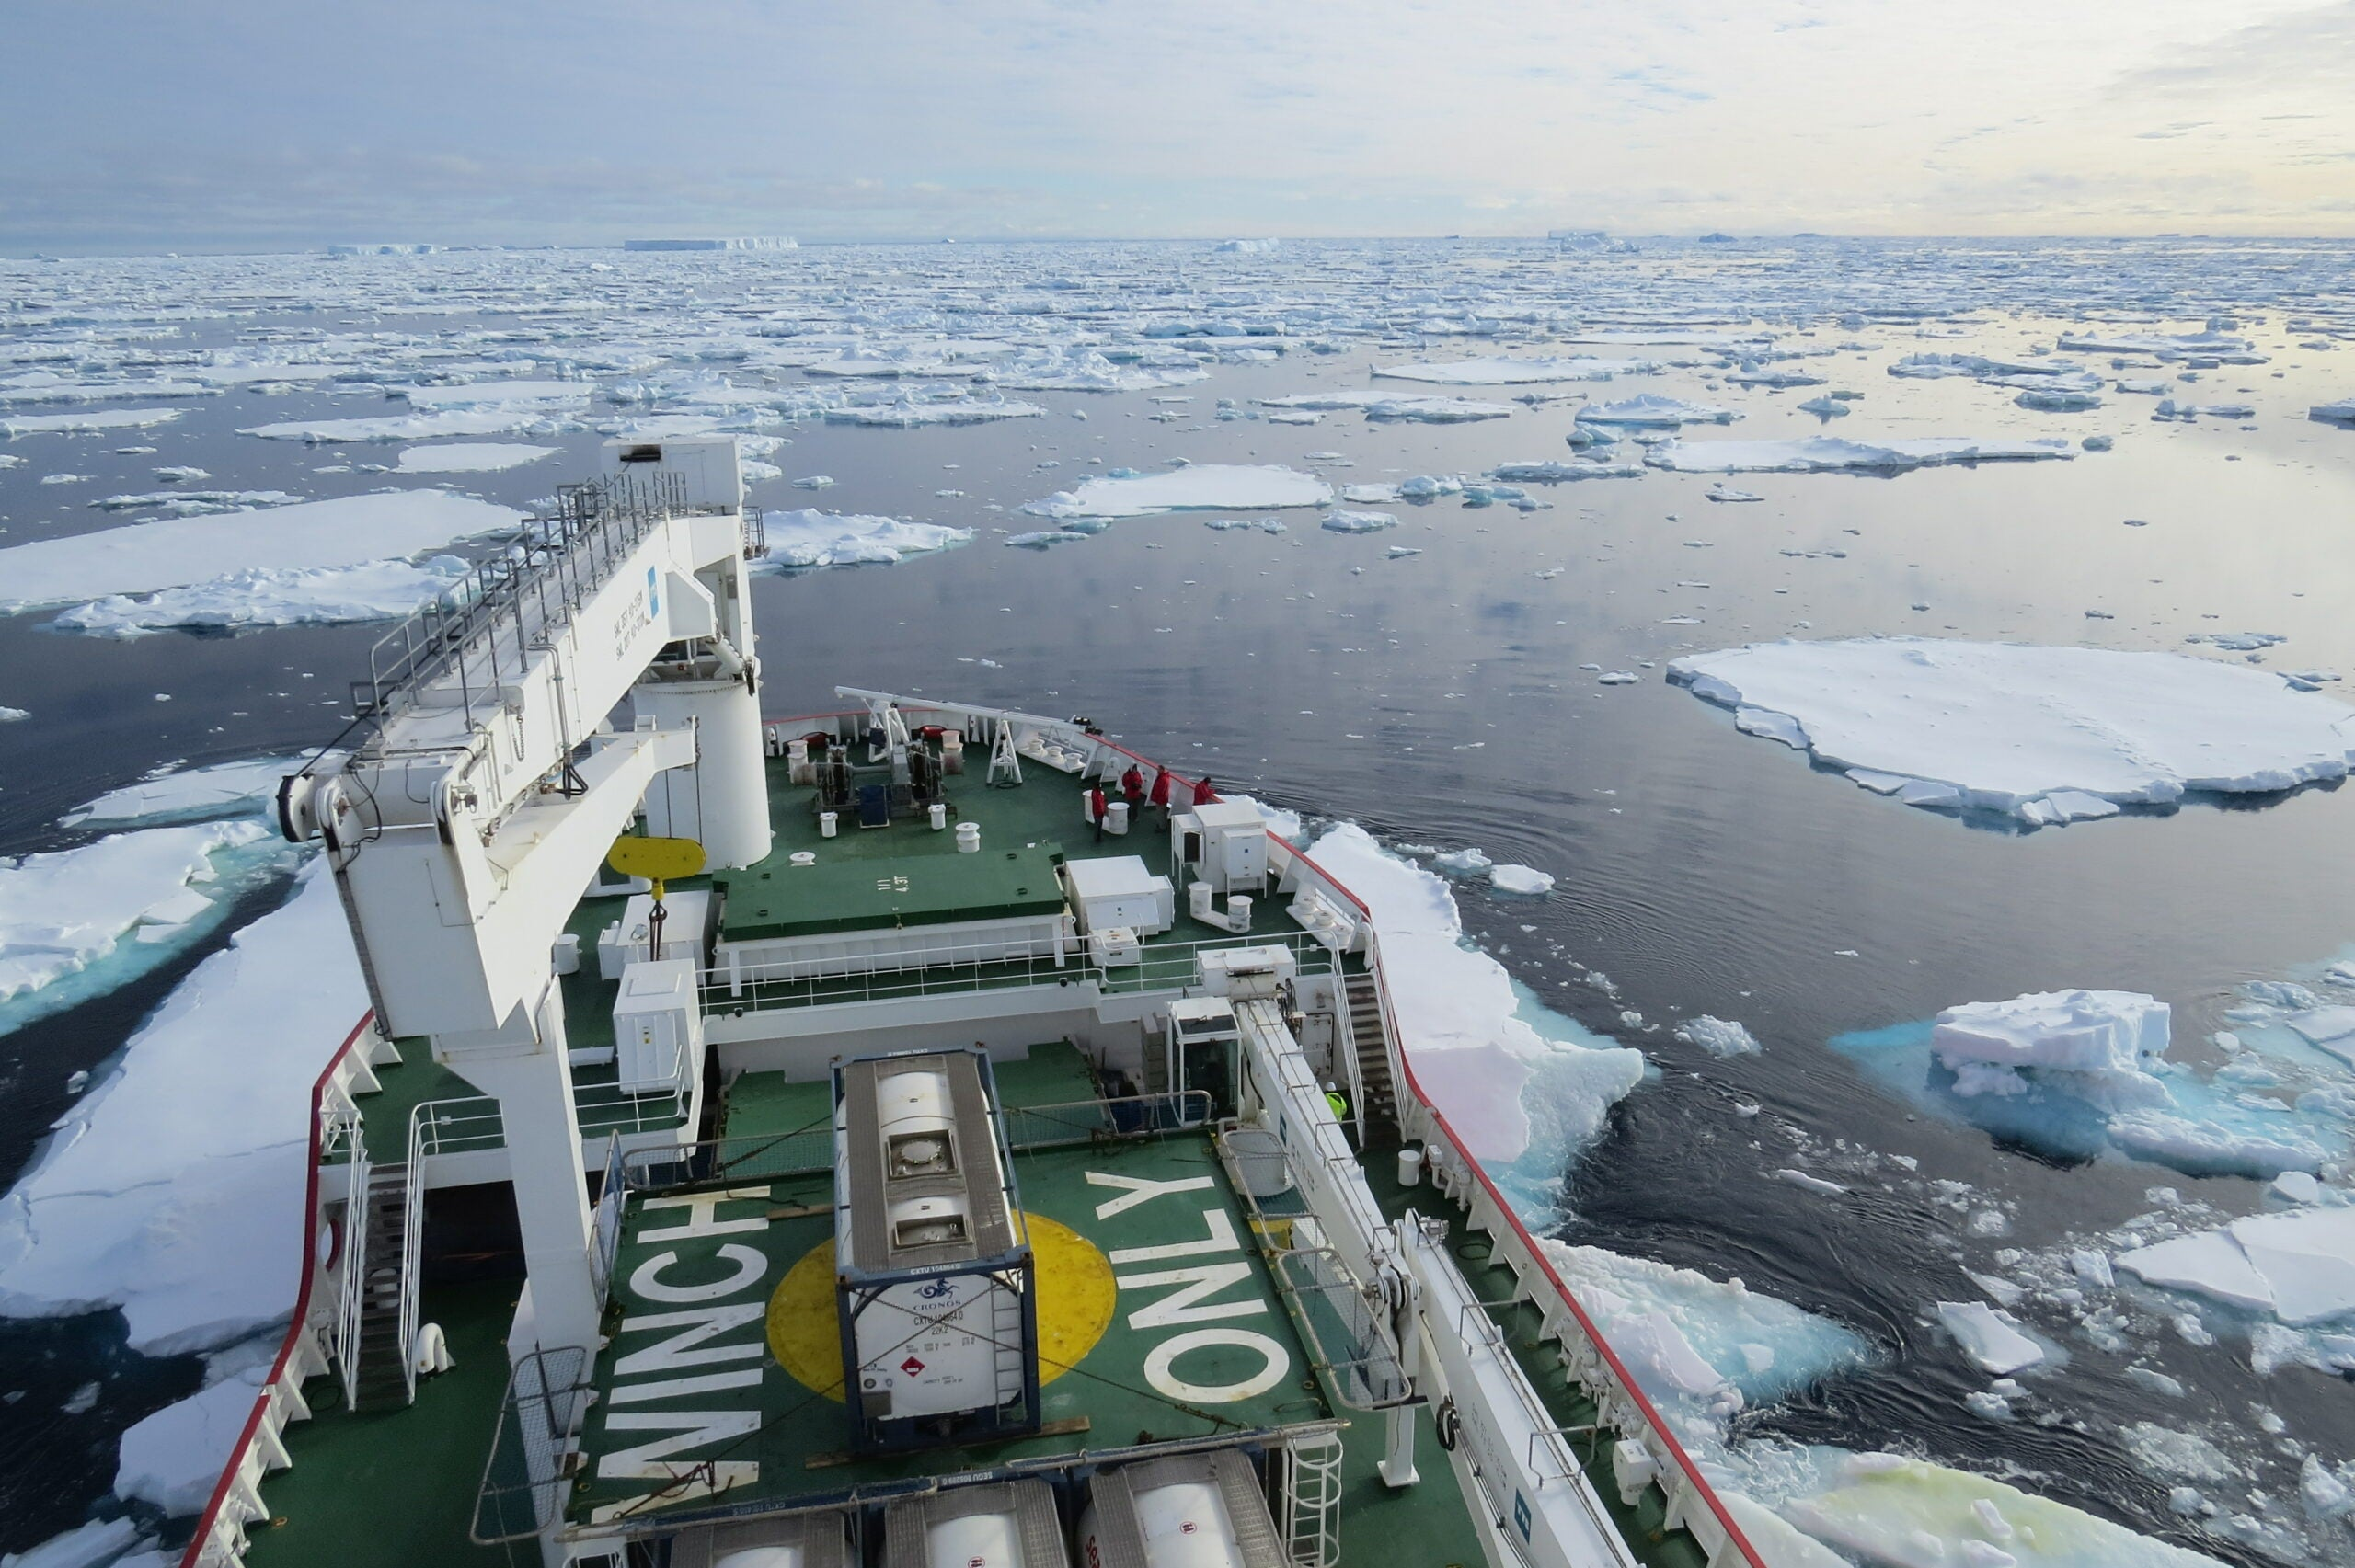 ship deck looking over icy water